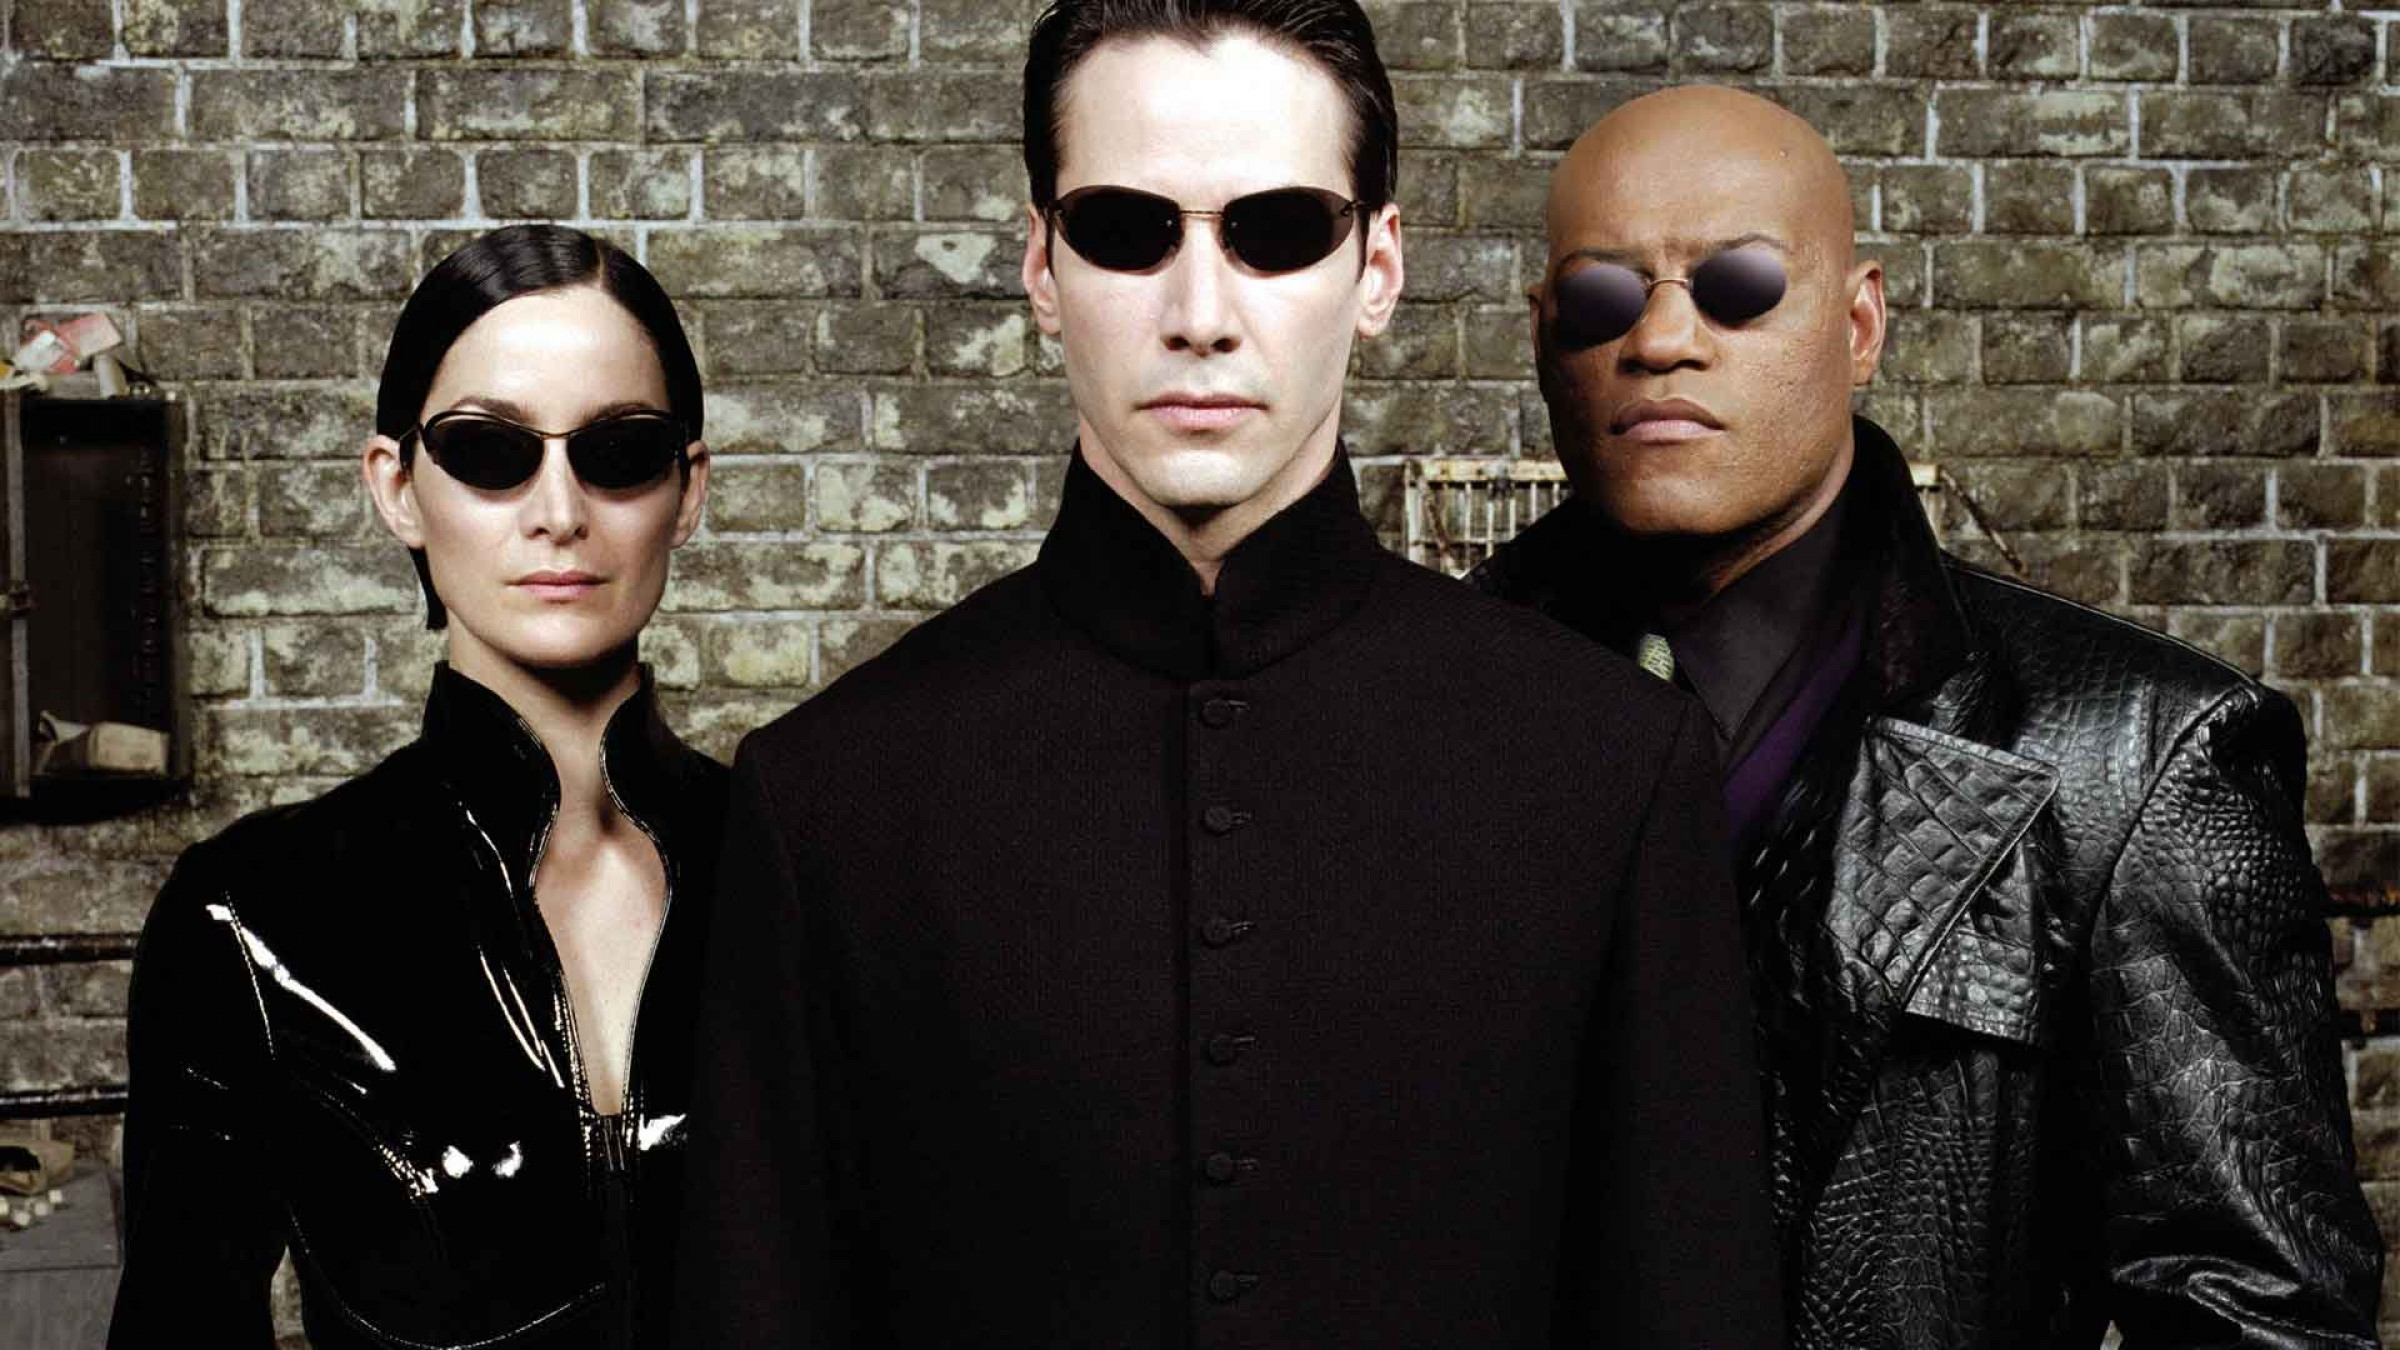 The Matrix Movie Scene